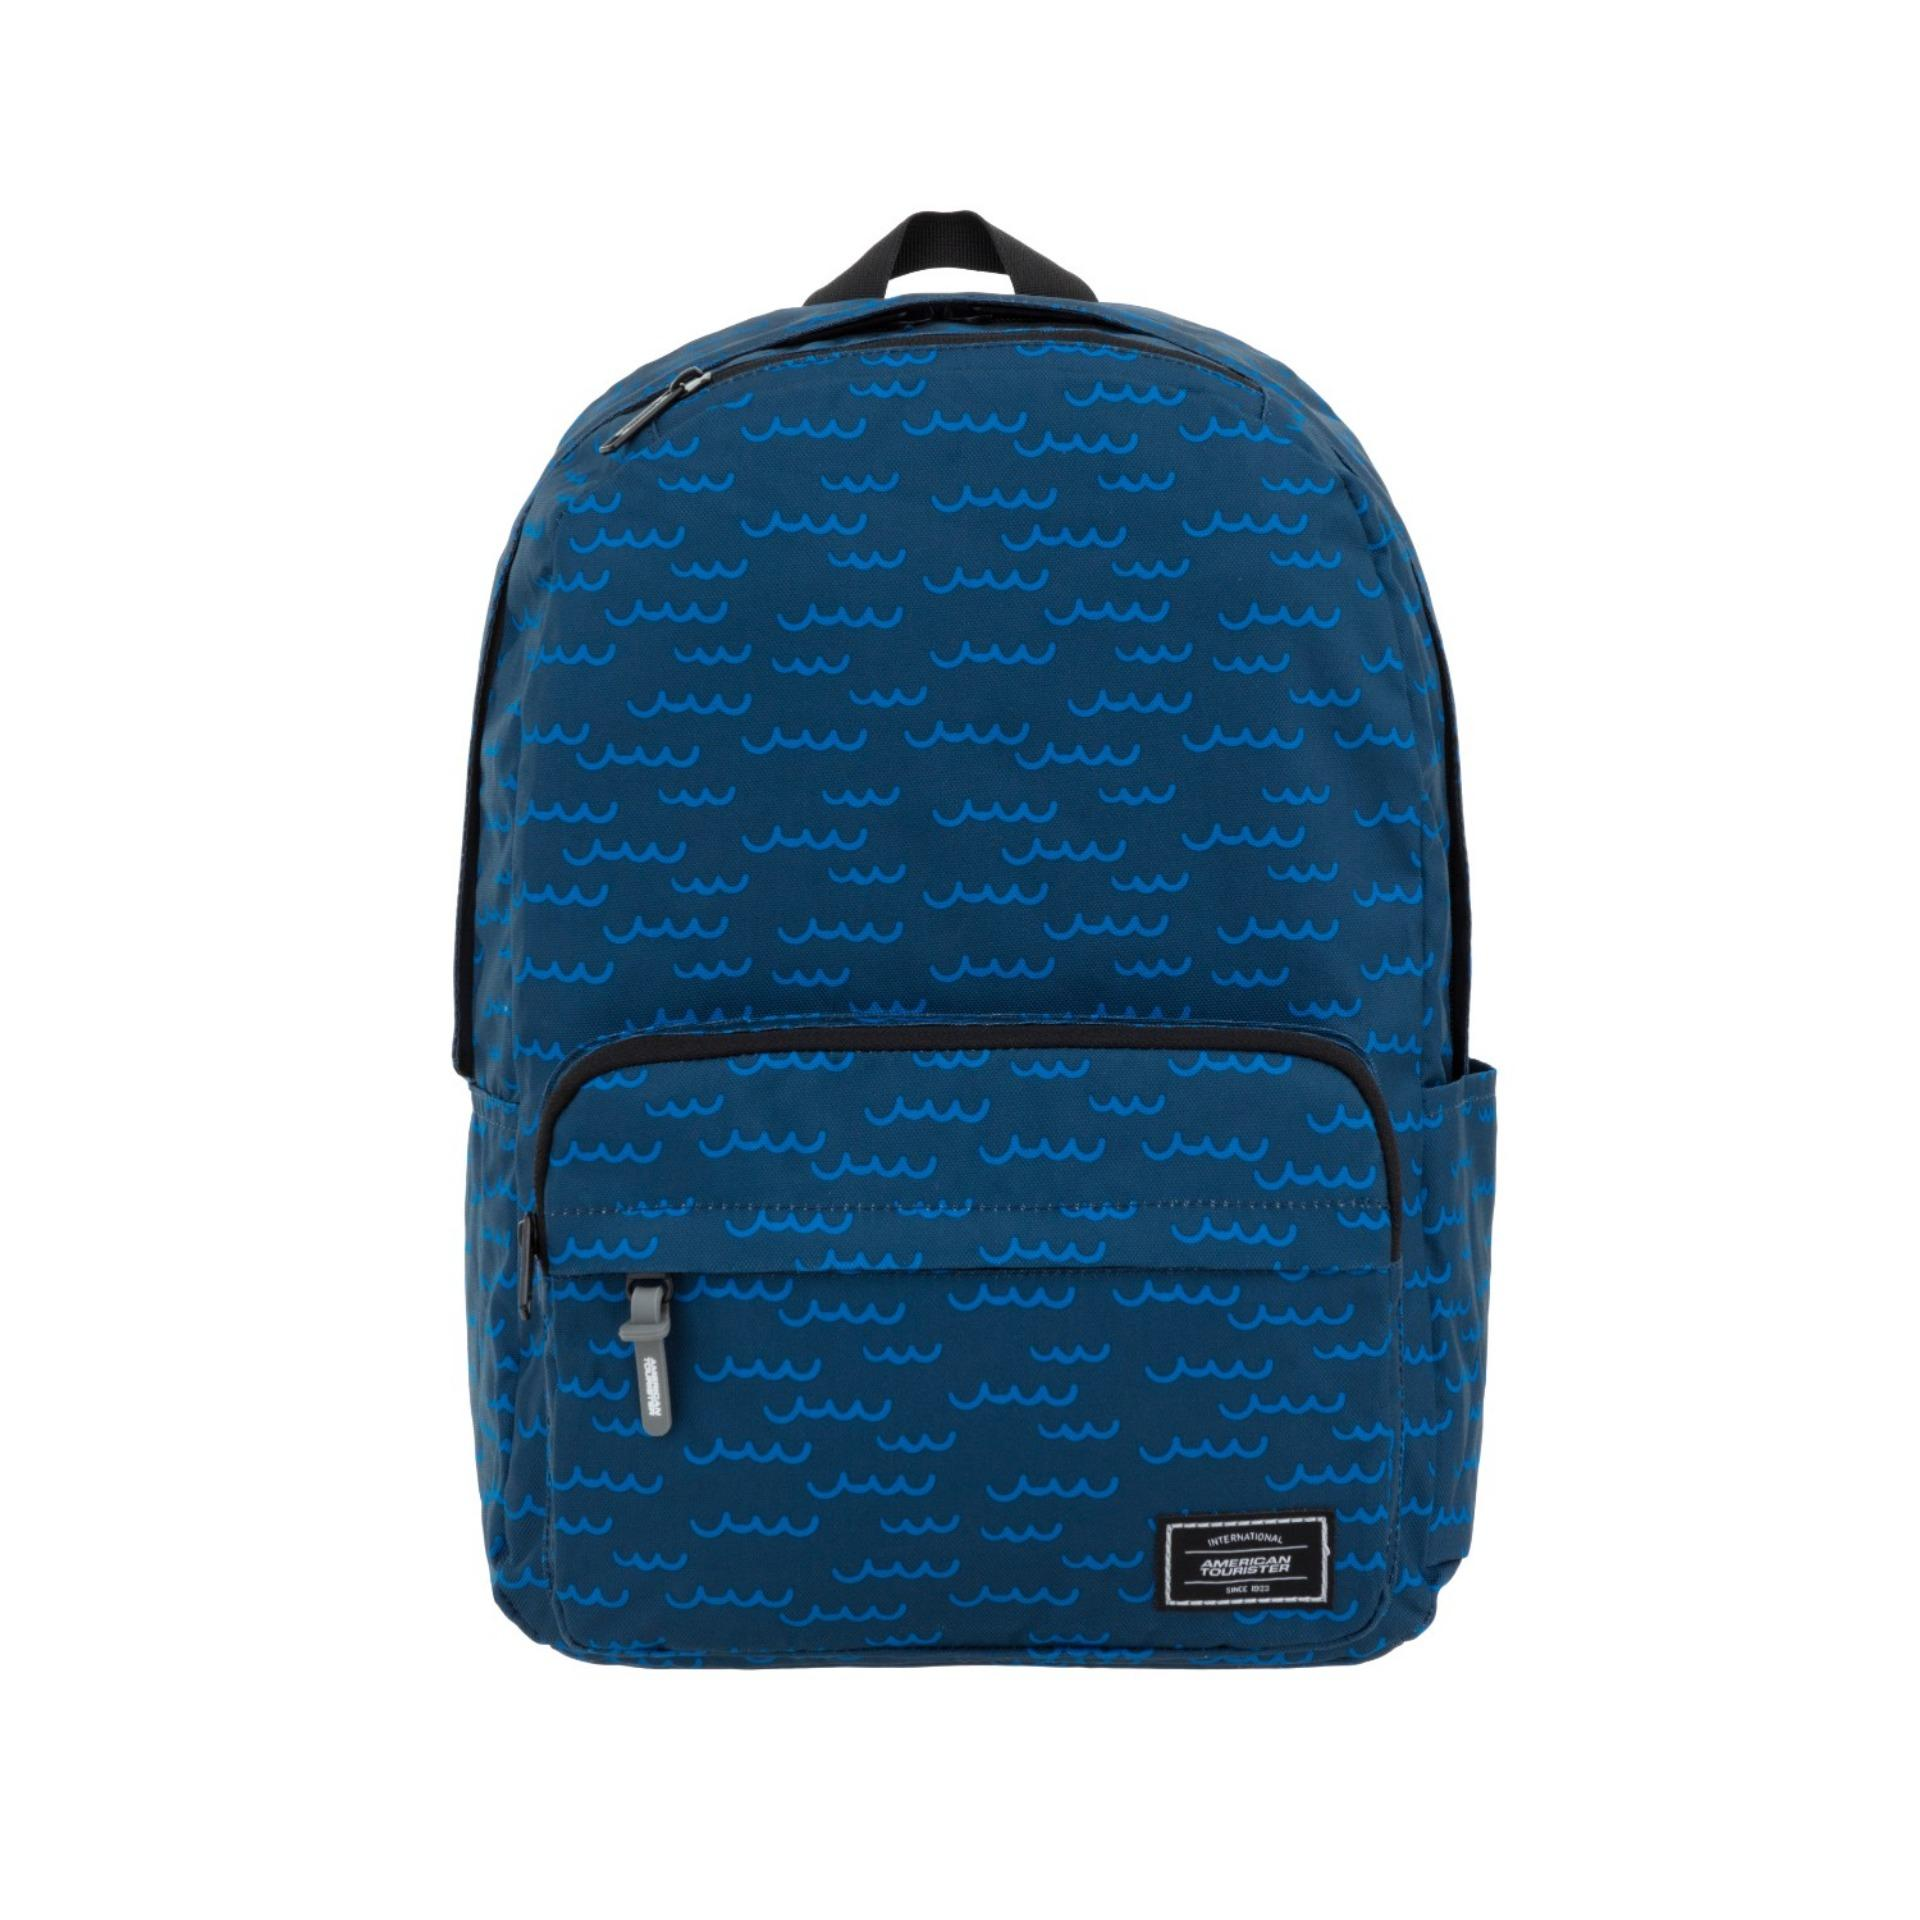 8489815d4f American Tourister Philippines  American Tourister price list ...